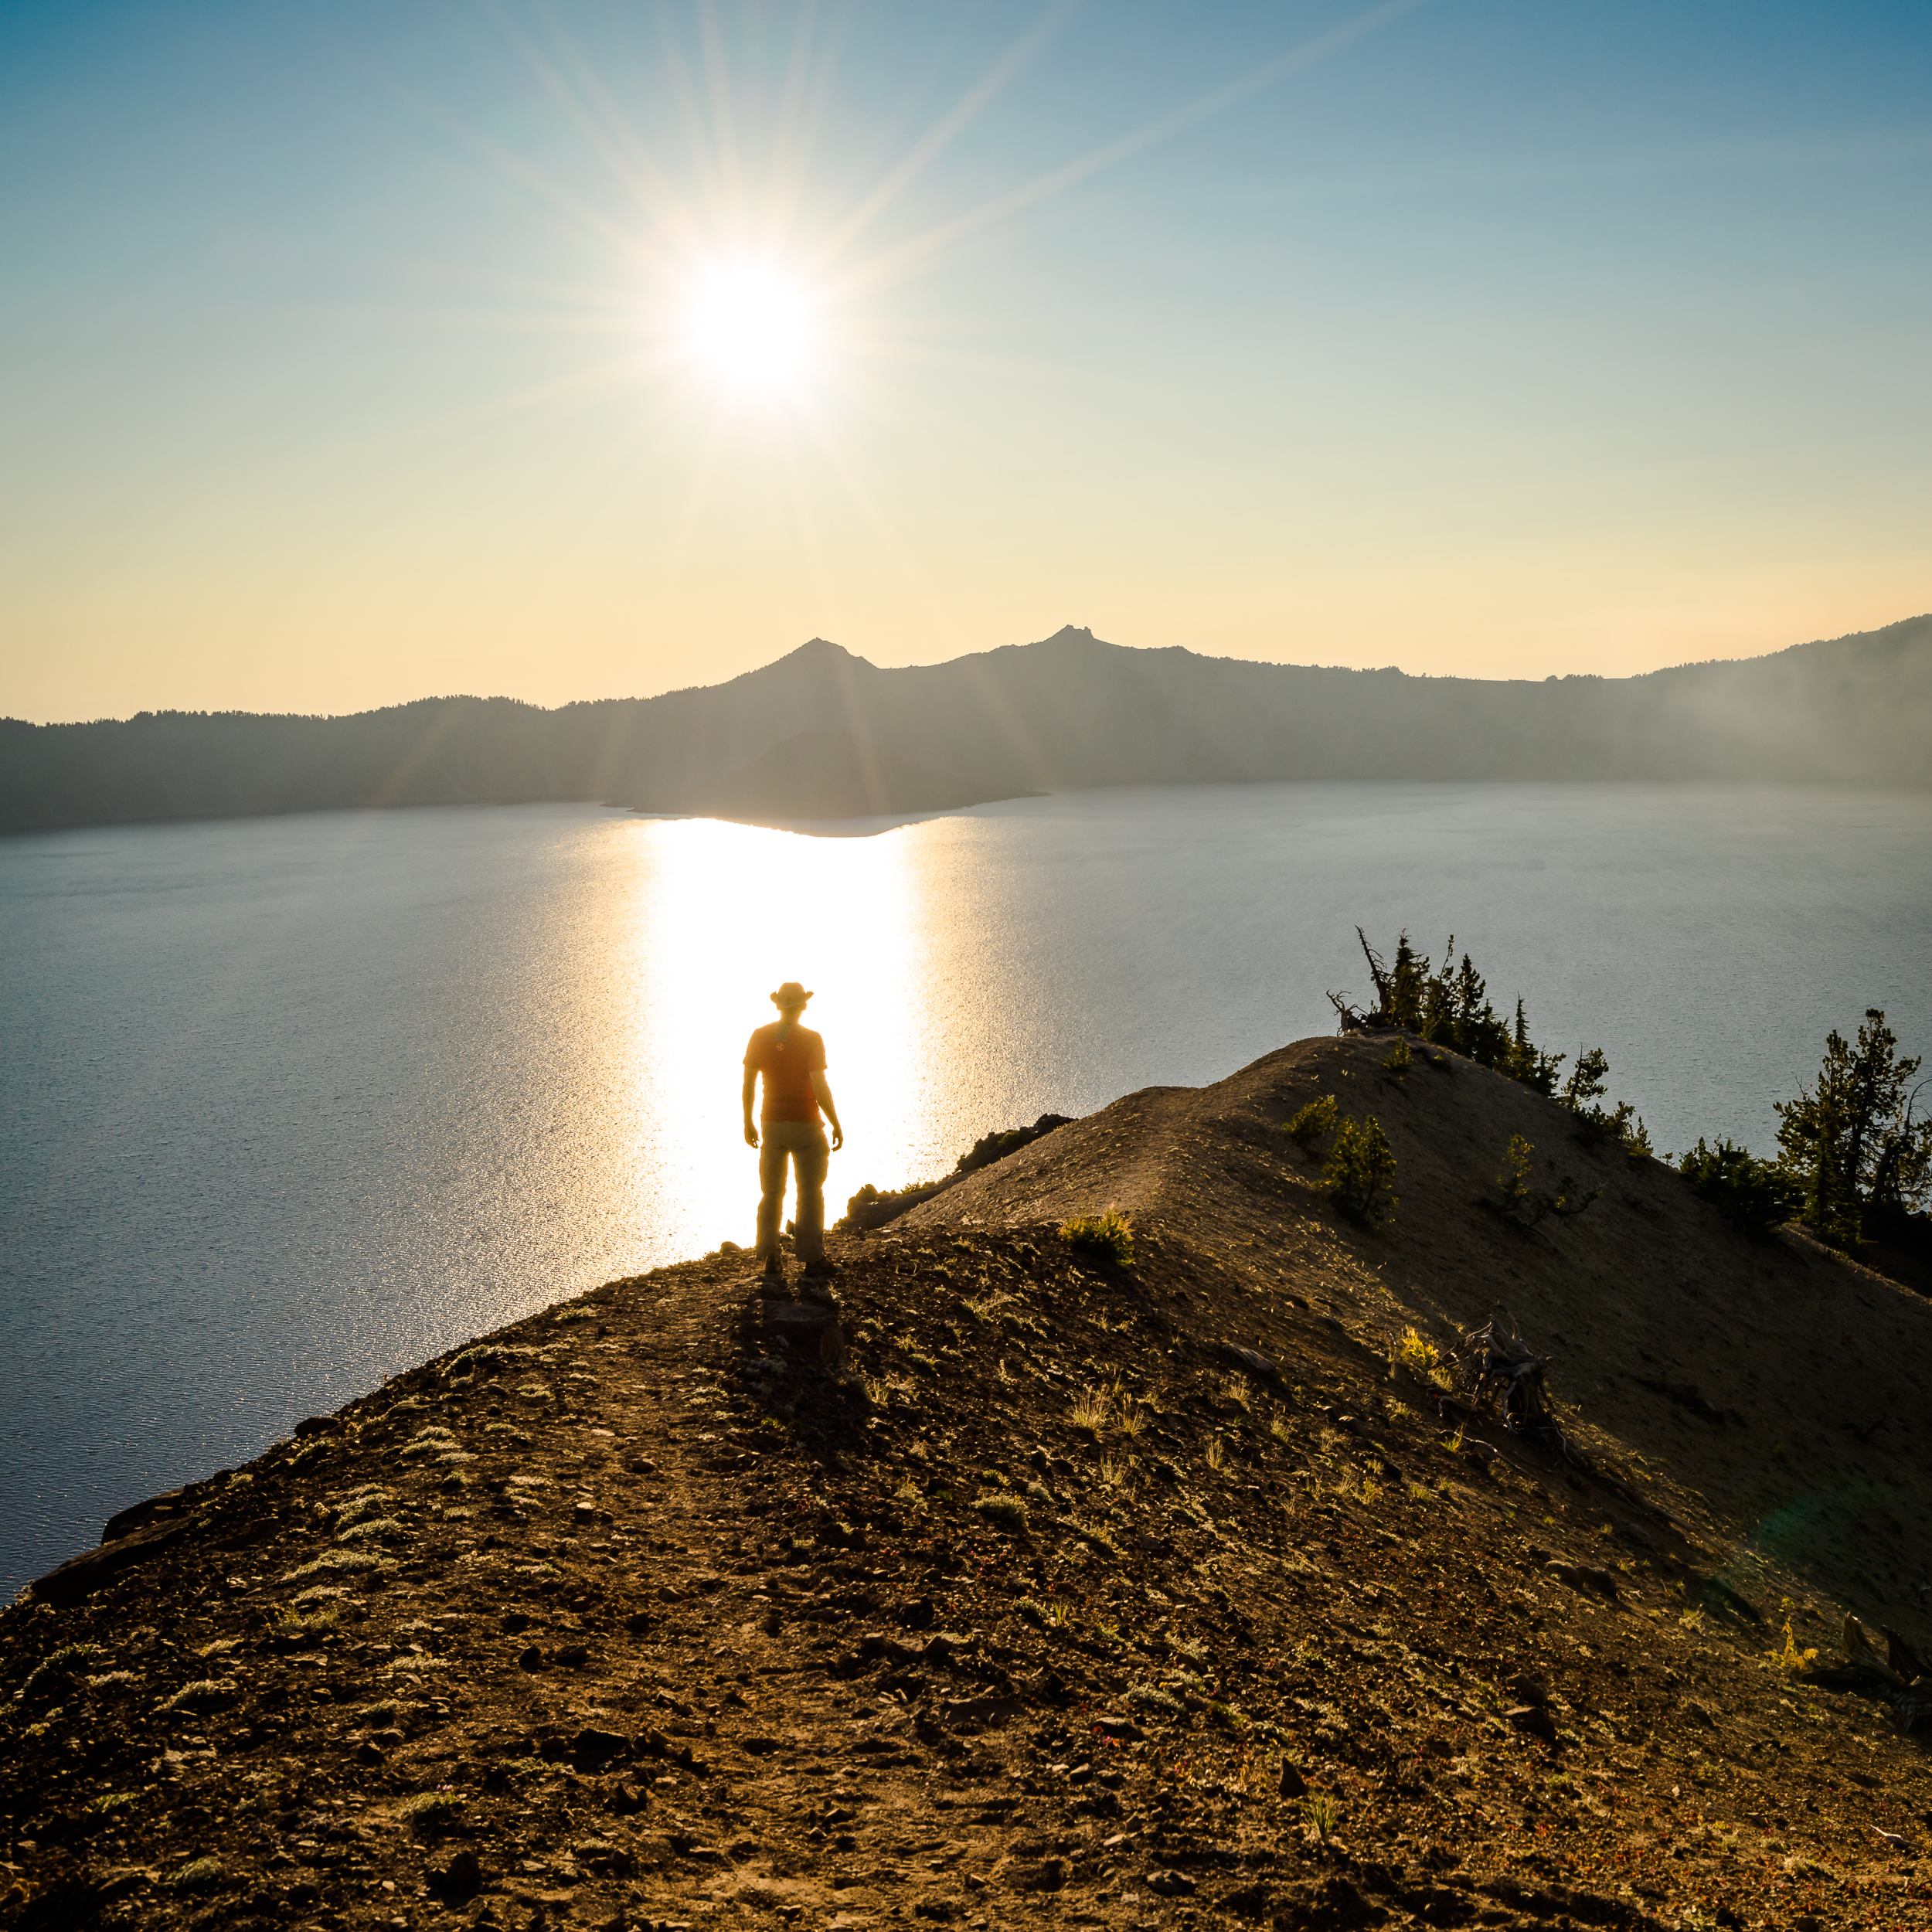 Hiking along the rim of Crater Lake